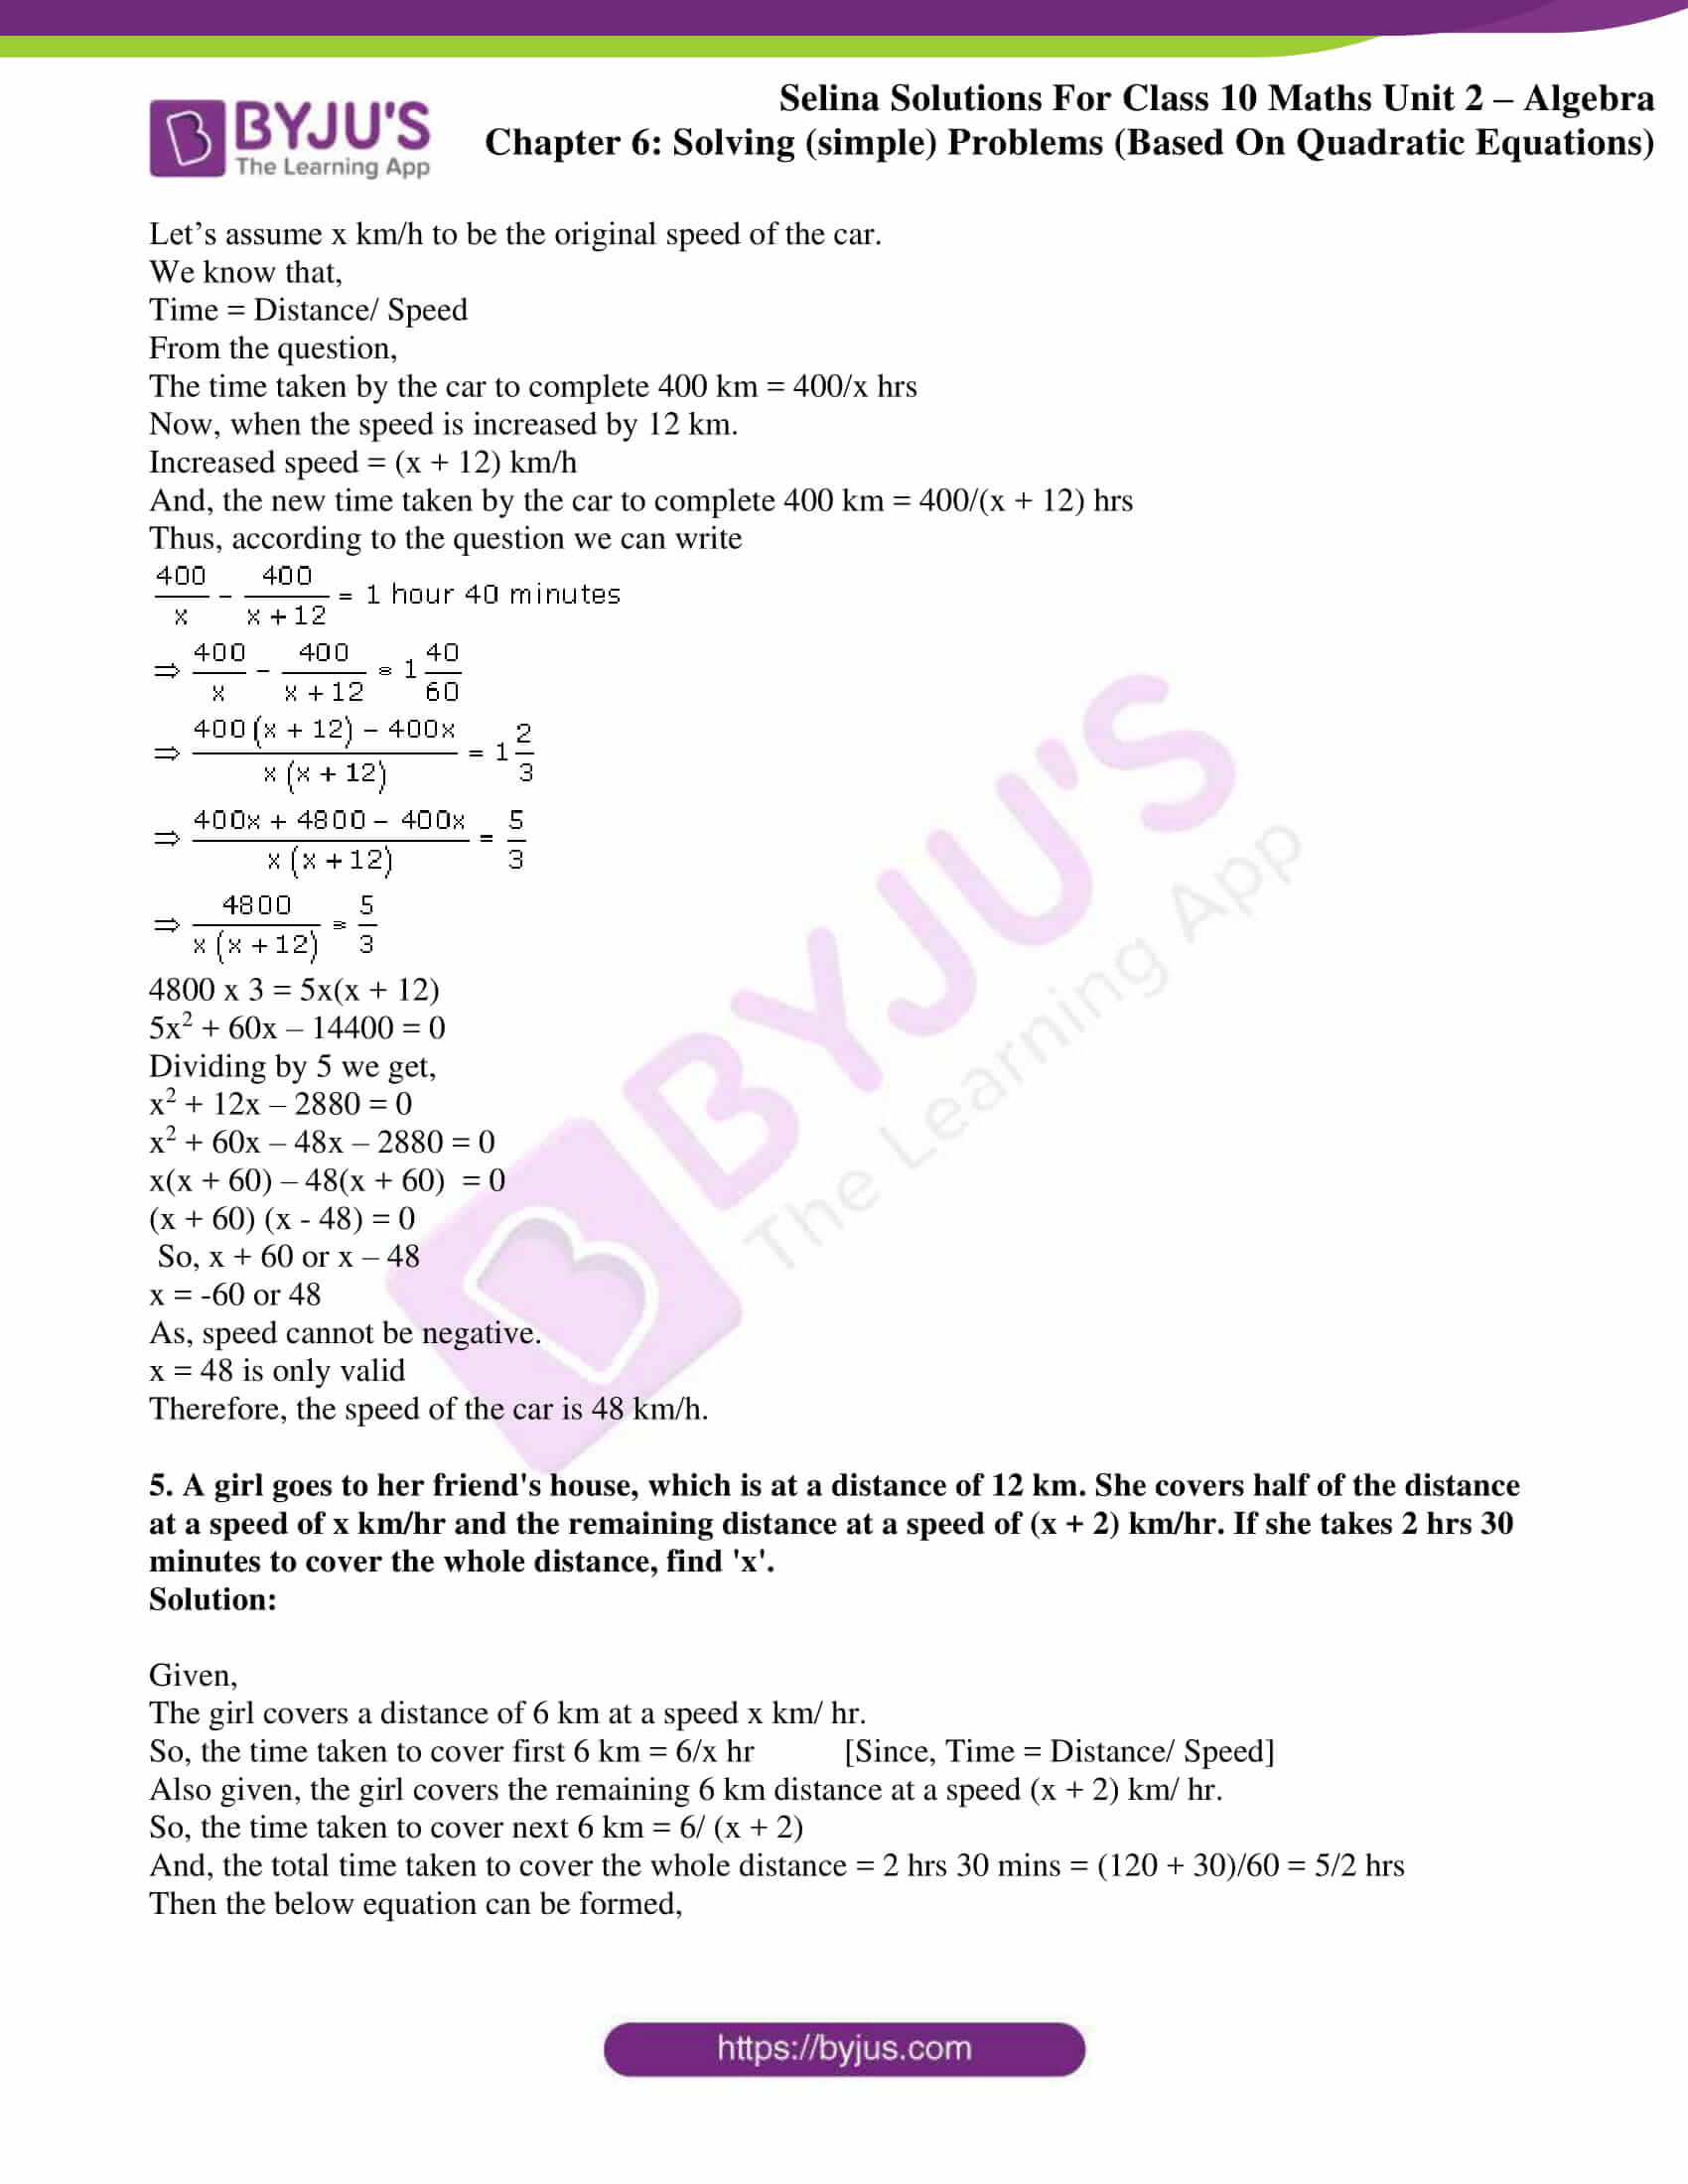 selina solution concise maths class 10 chapter 6c